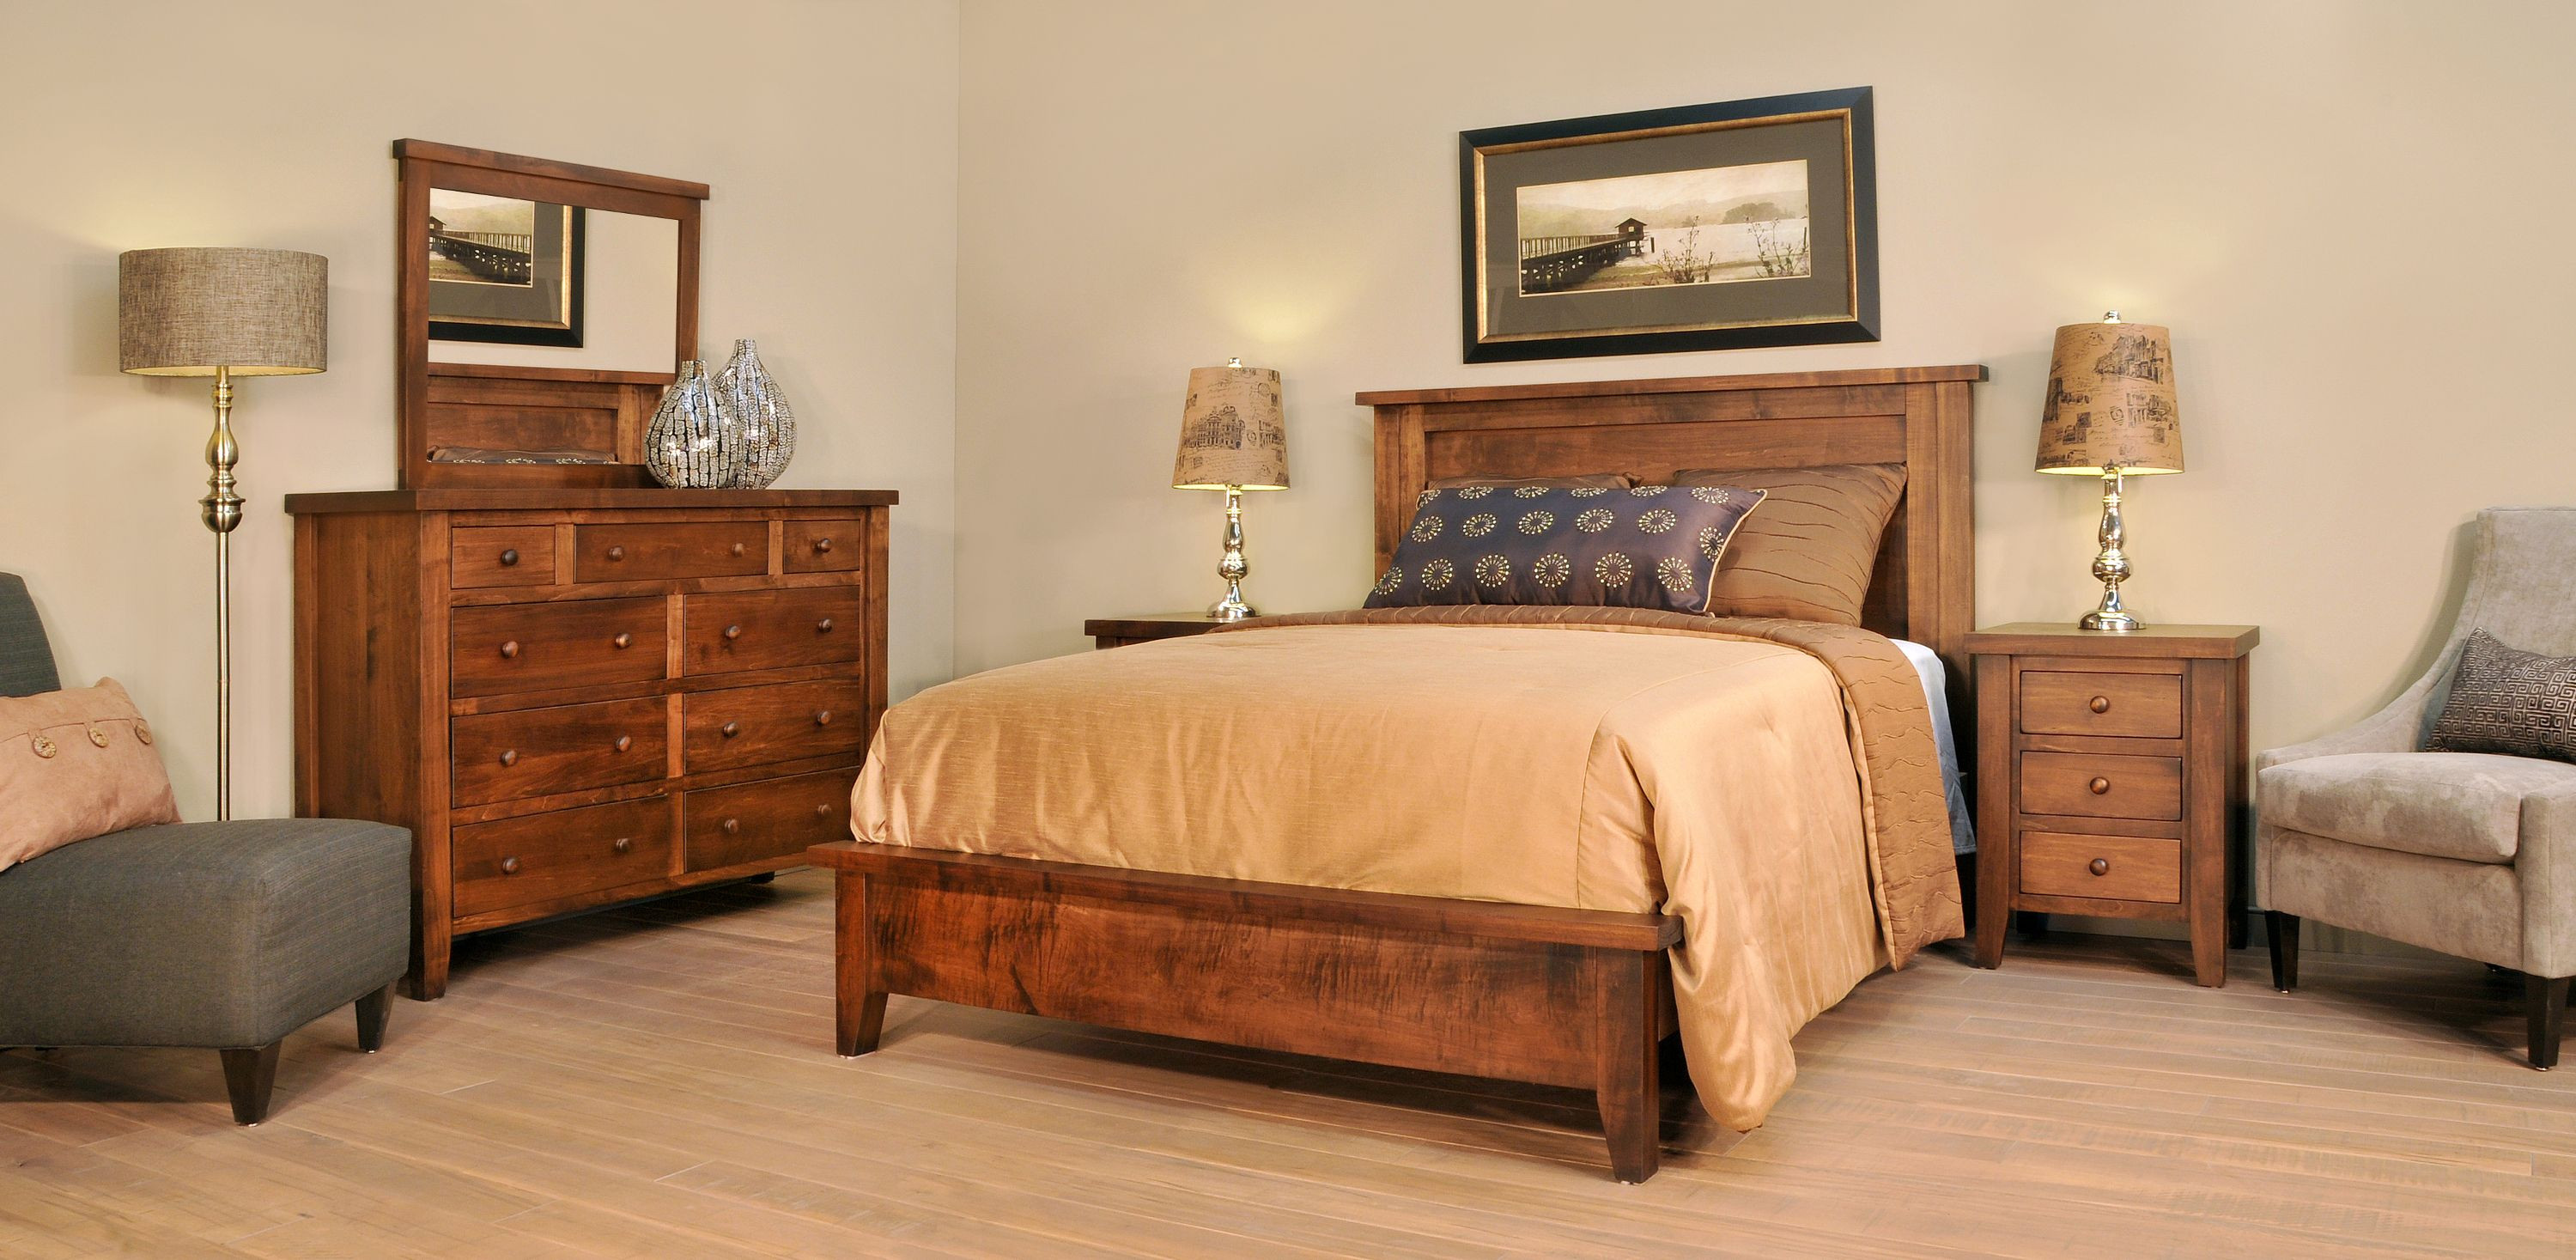 Ruff Sawn Farmhouse Bedroom Collection